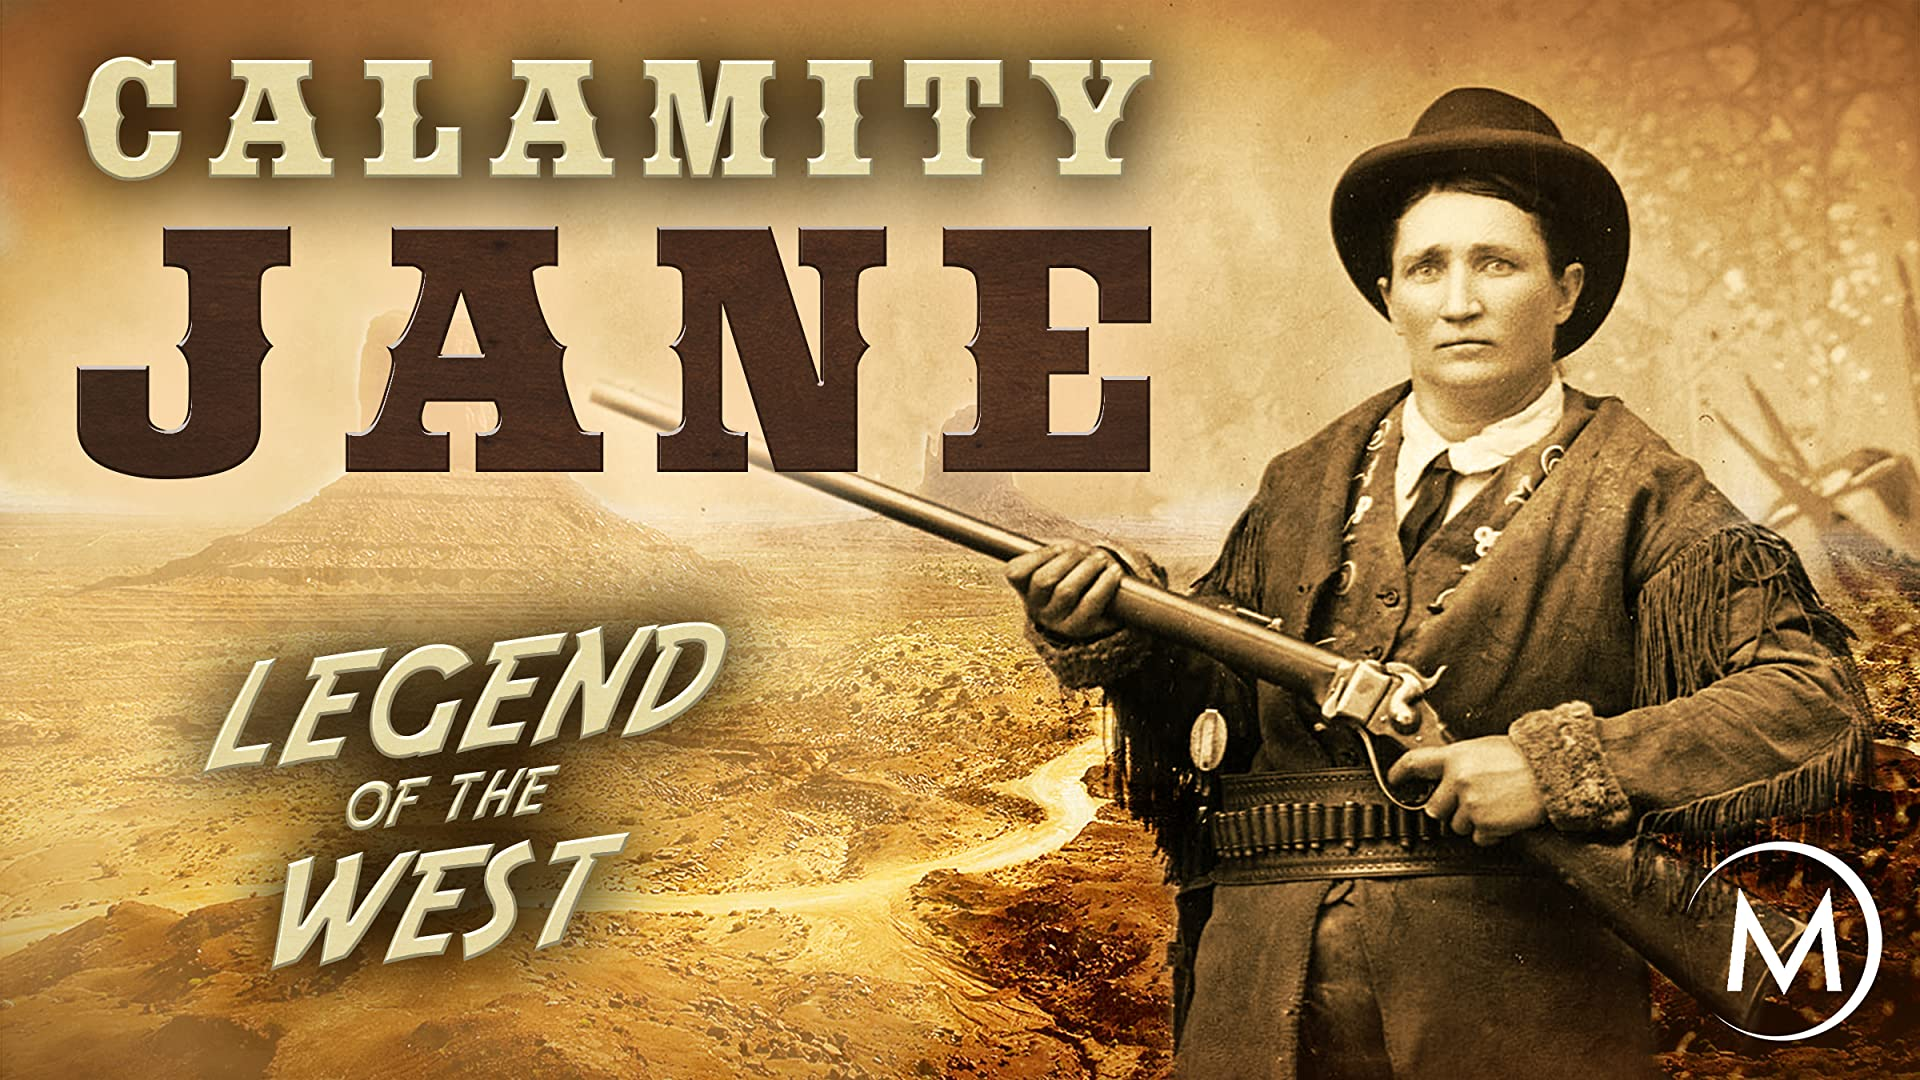 Calamity Jane: Legend of the West